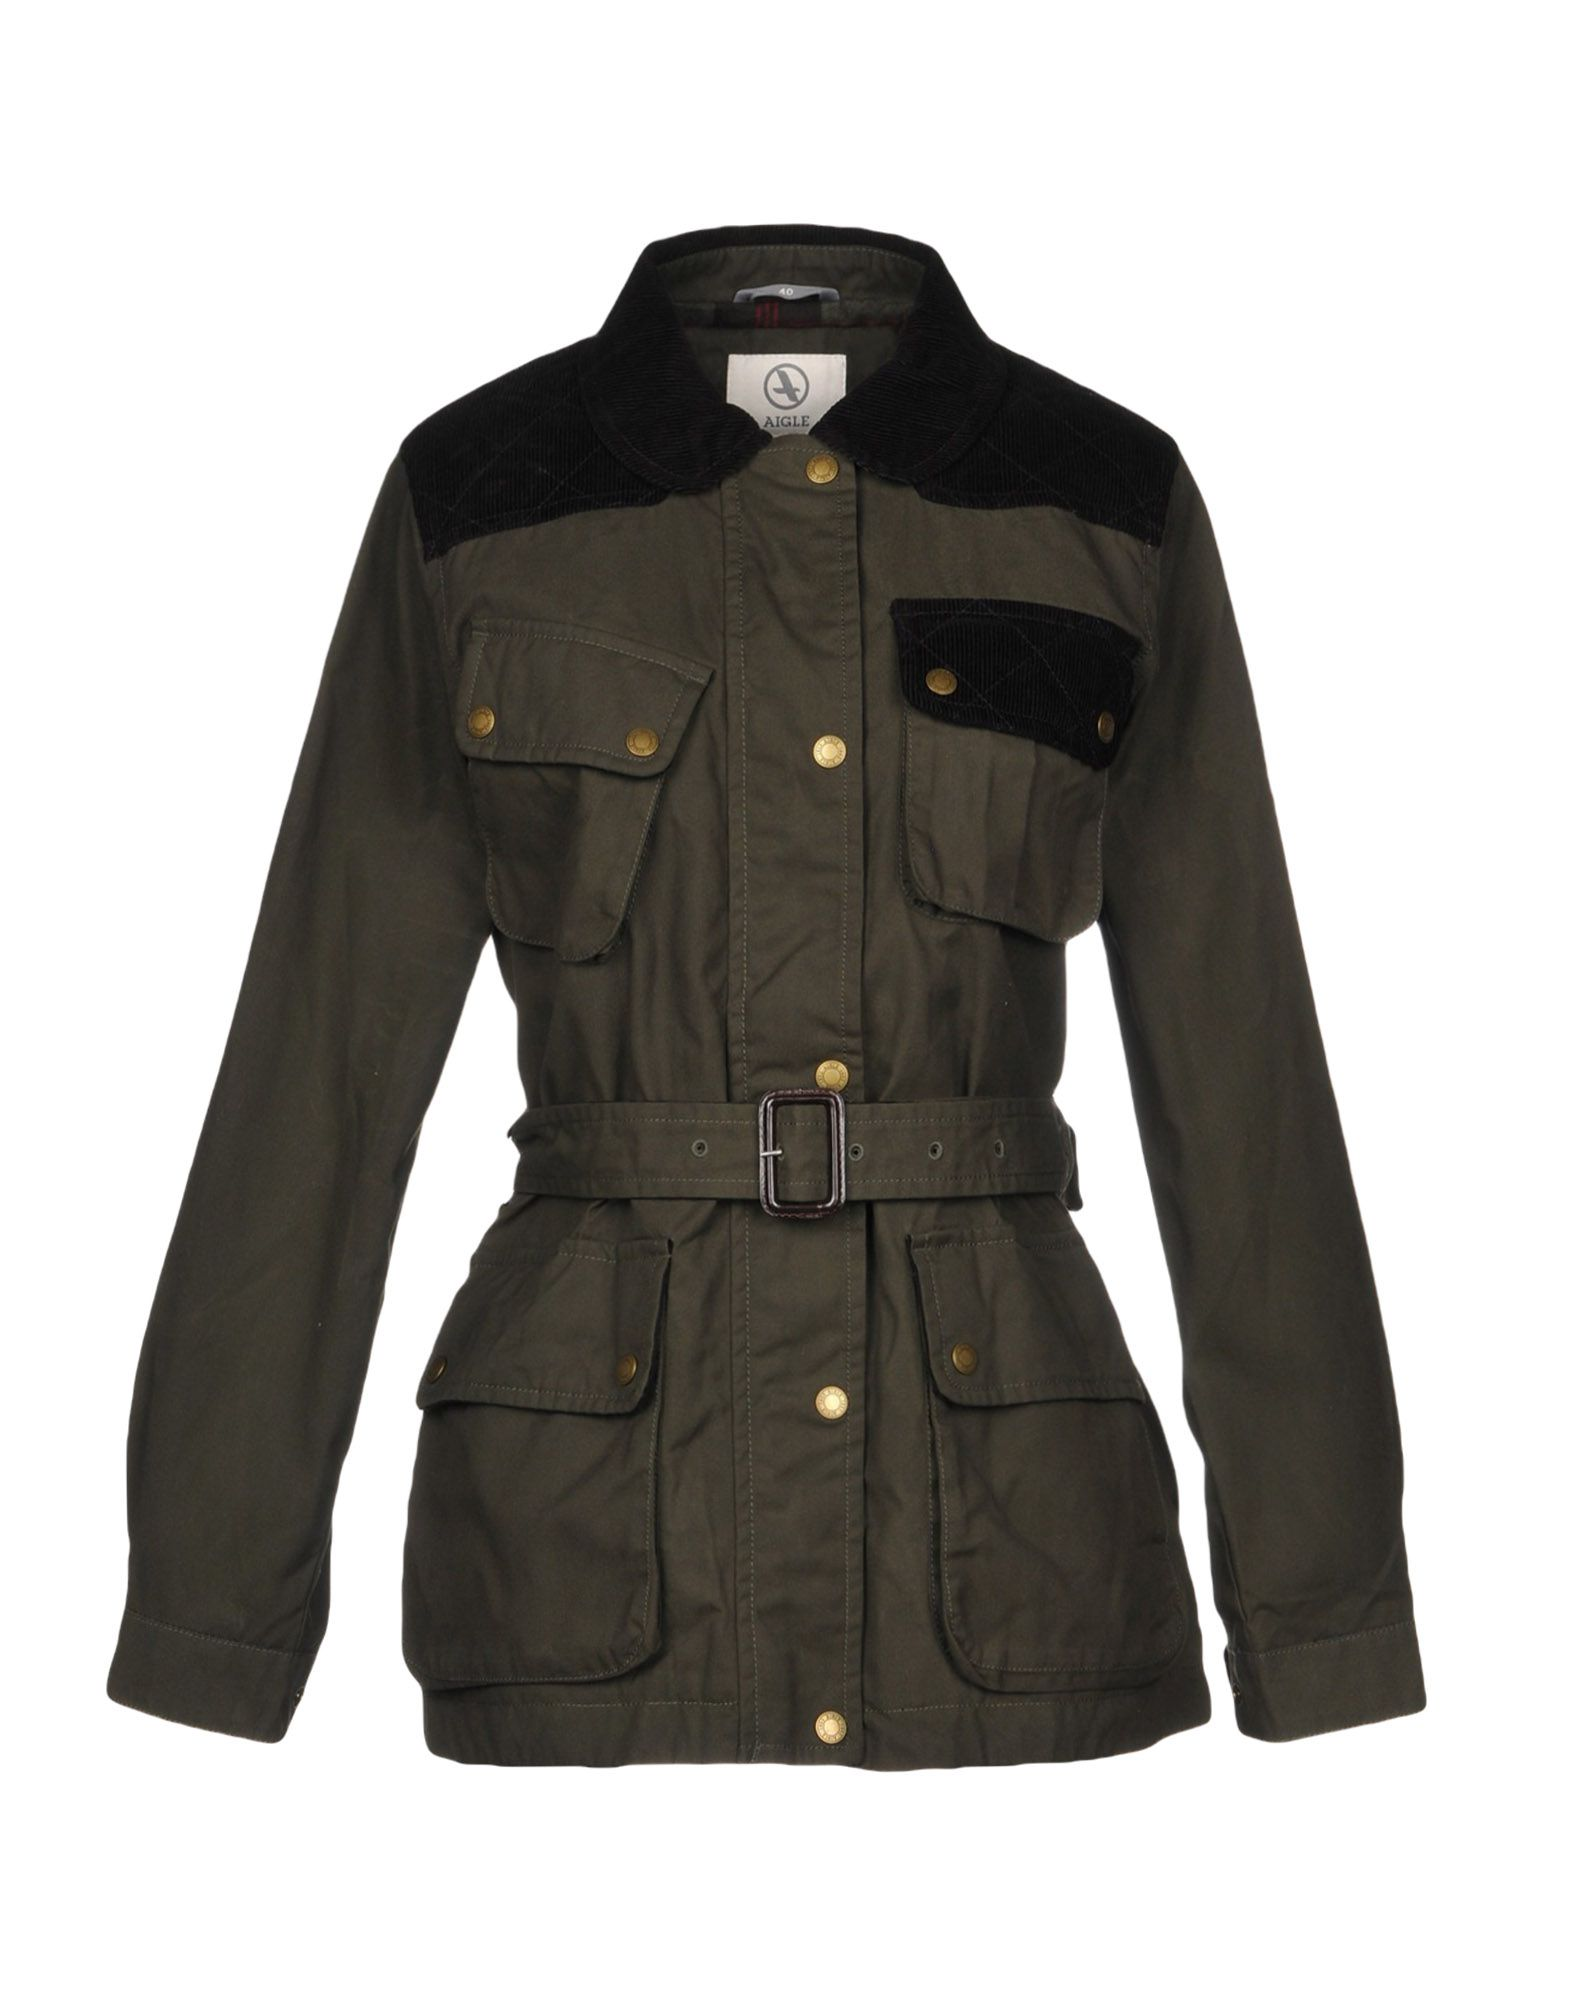 AIGLE Jacket in Military Green